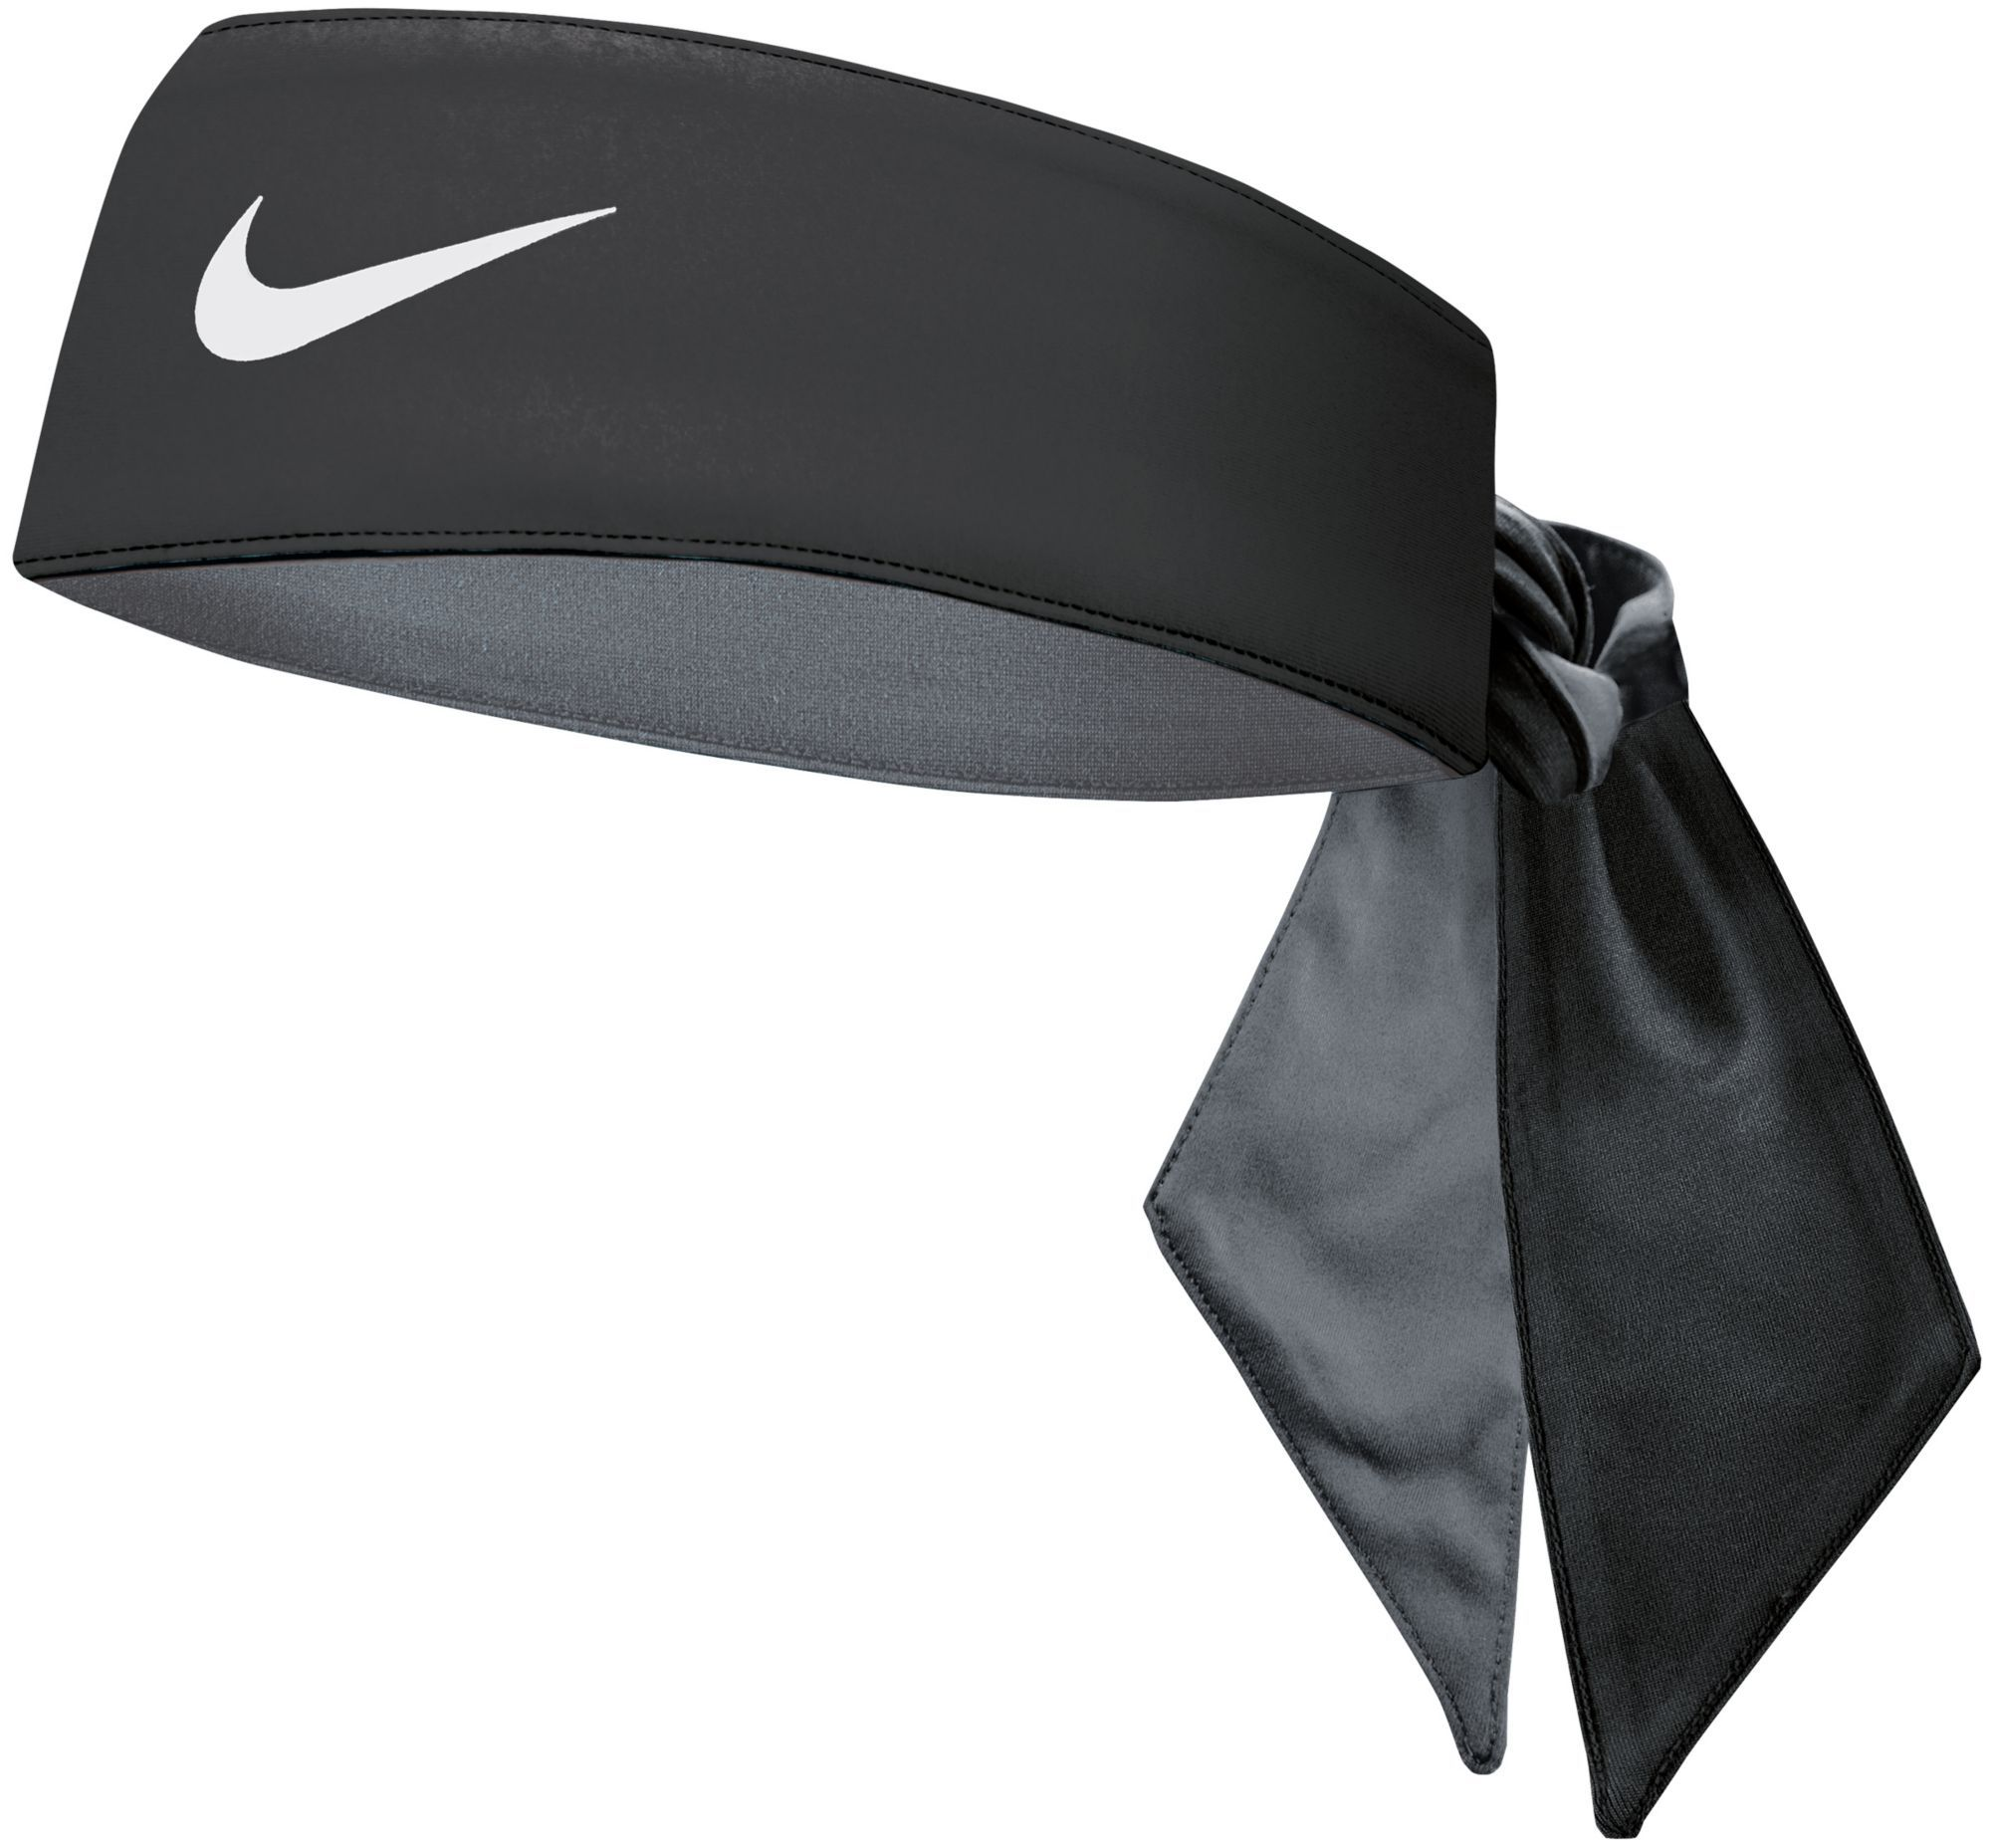 Nike Cooling Head Tie Kj Stuff Nike Tie Headbands Nike Headbands Nike Dri Fit